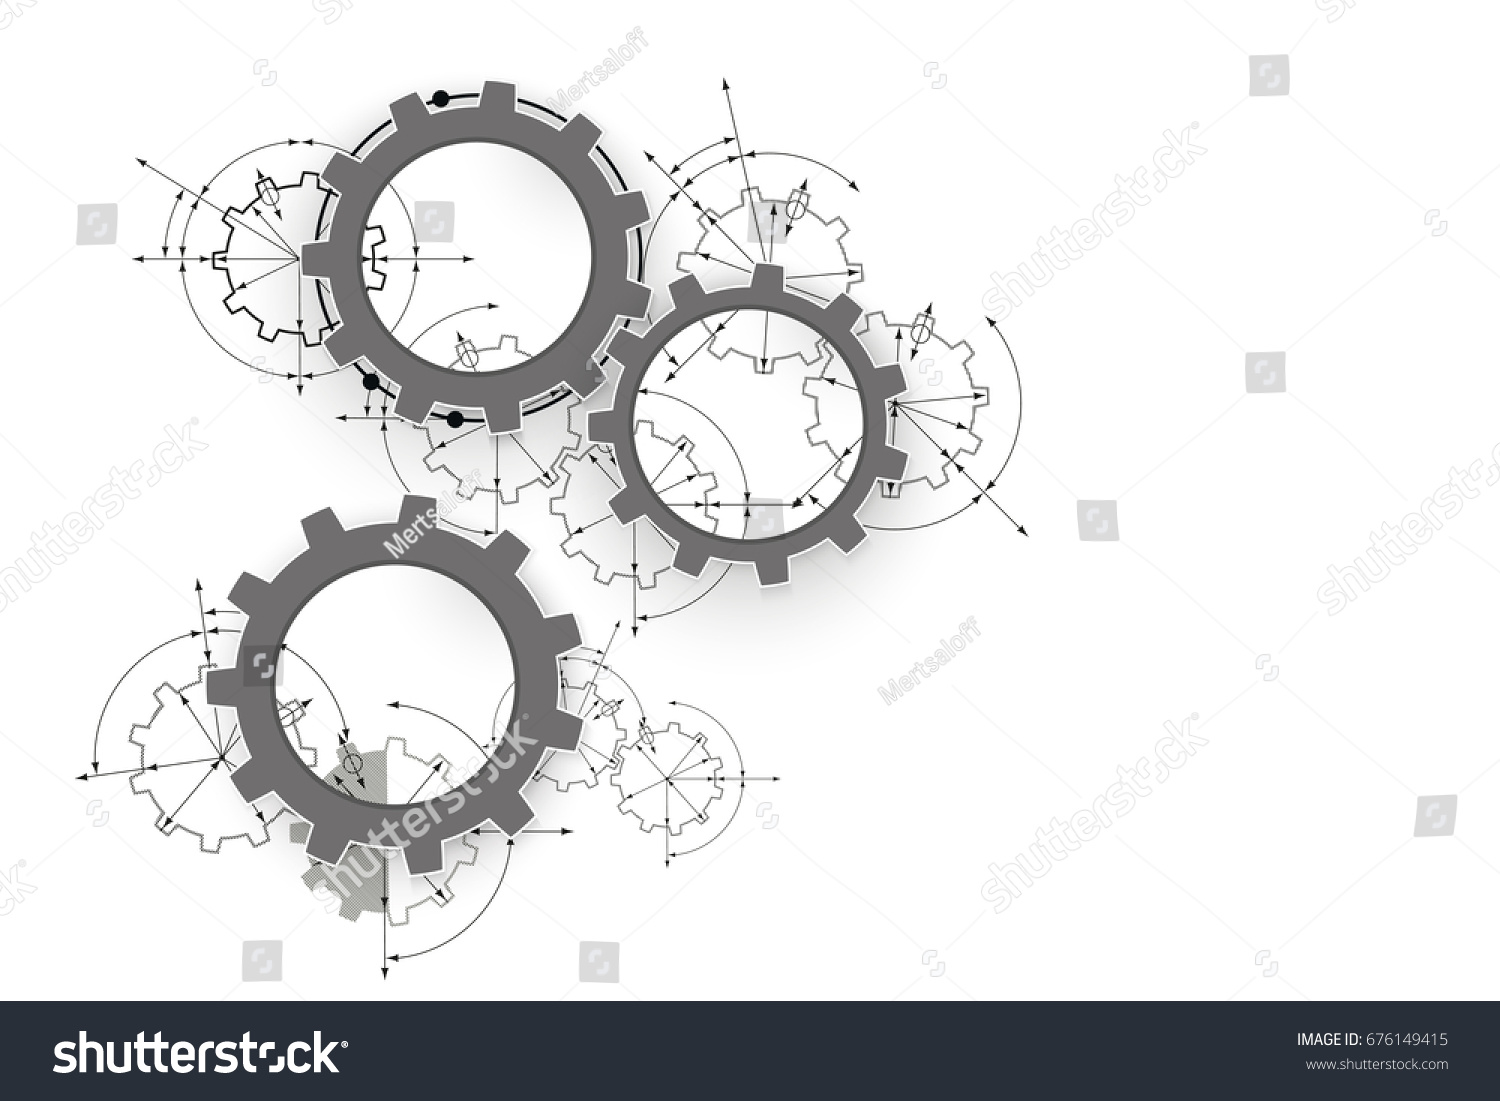 Engineering drawing abstract industrial background with a cogwheels